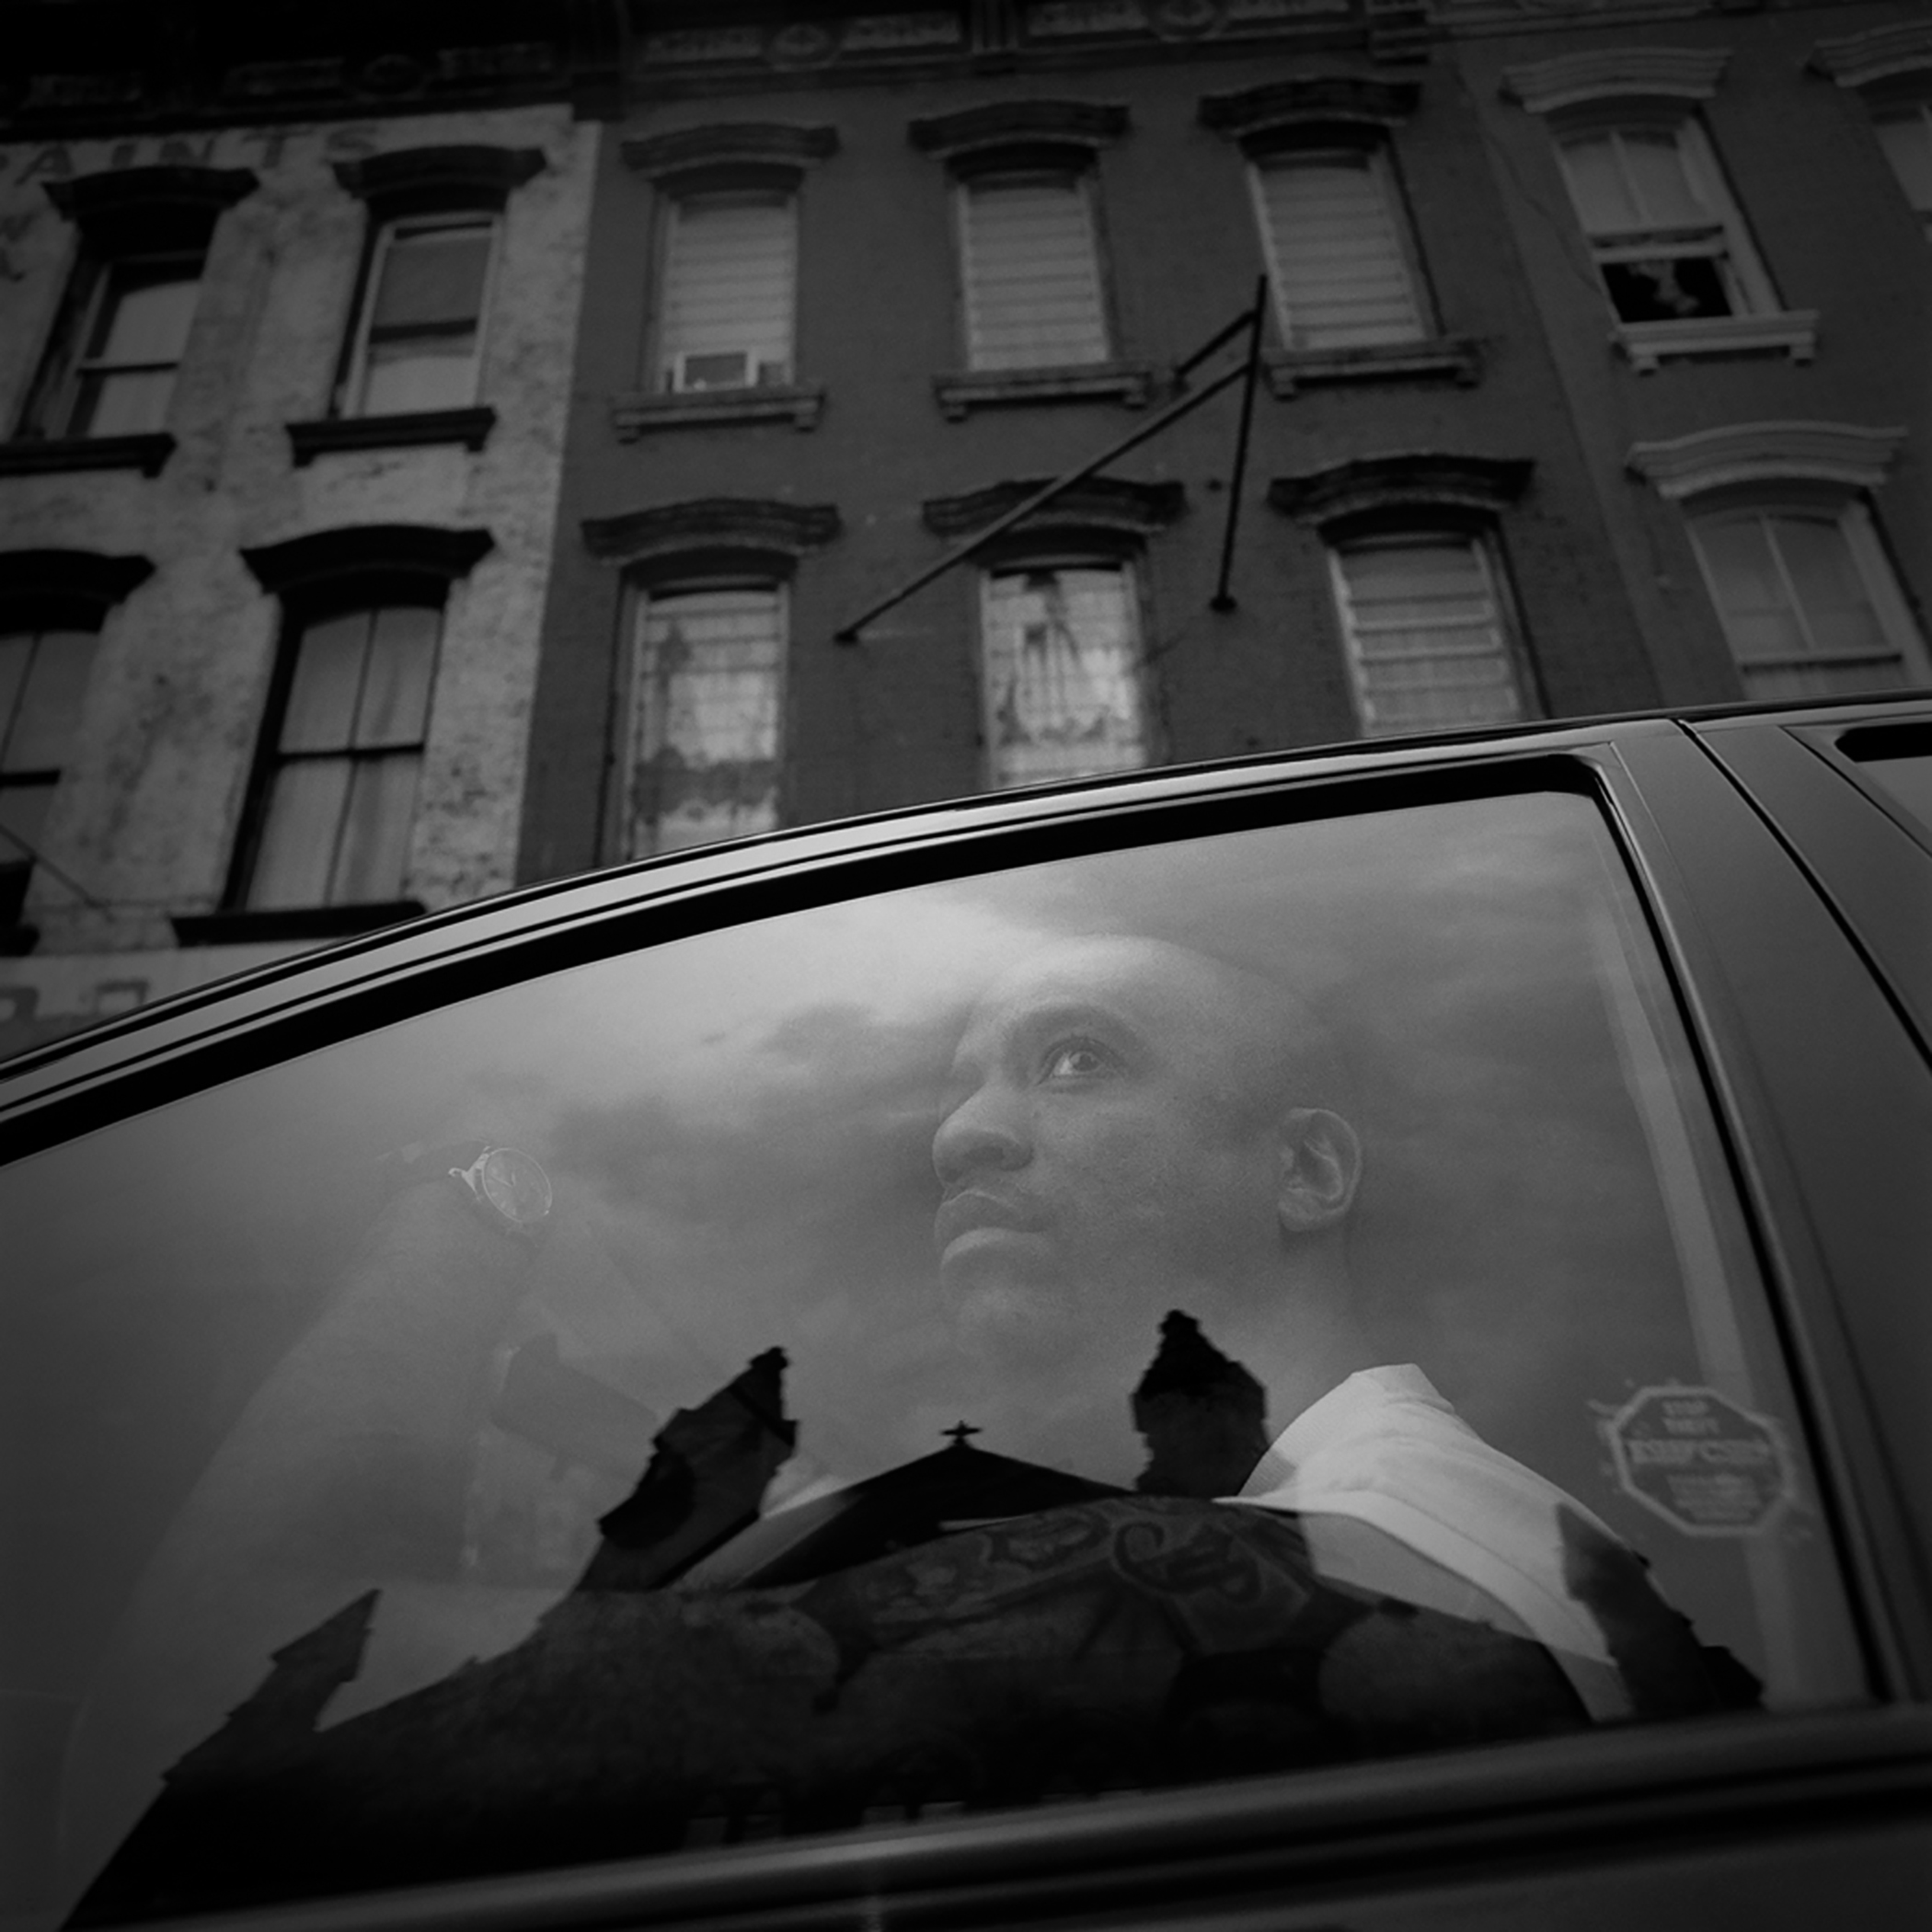 """# 2 of 3, from the book, """"Crosses: Portraits of Clergy Abuse"""", by photographer, Carmine Galasso.  06/26/2004.  Paterson, N. J.  """"I was raped by a priest and later by a deacon.  When you come down to it, that's what it was - brutal rape"""", says Johnny Vega a victim/survivor of clergy sexual abuse.  """"I still get intimidated by that church.  Even now I have dreams wondering if that door is going to open and see the priest."""" Mr. Vega summoned up the strength to drive past the church reflected in his car window, where he was brutally raped as a young boy by a Catholic priest.  Photo:  Carmine Galasso."""